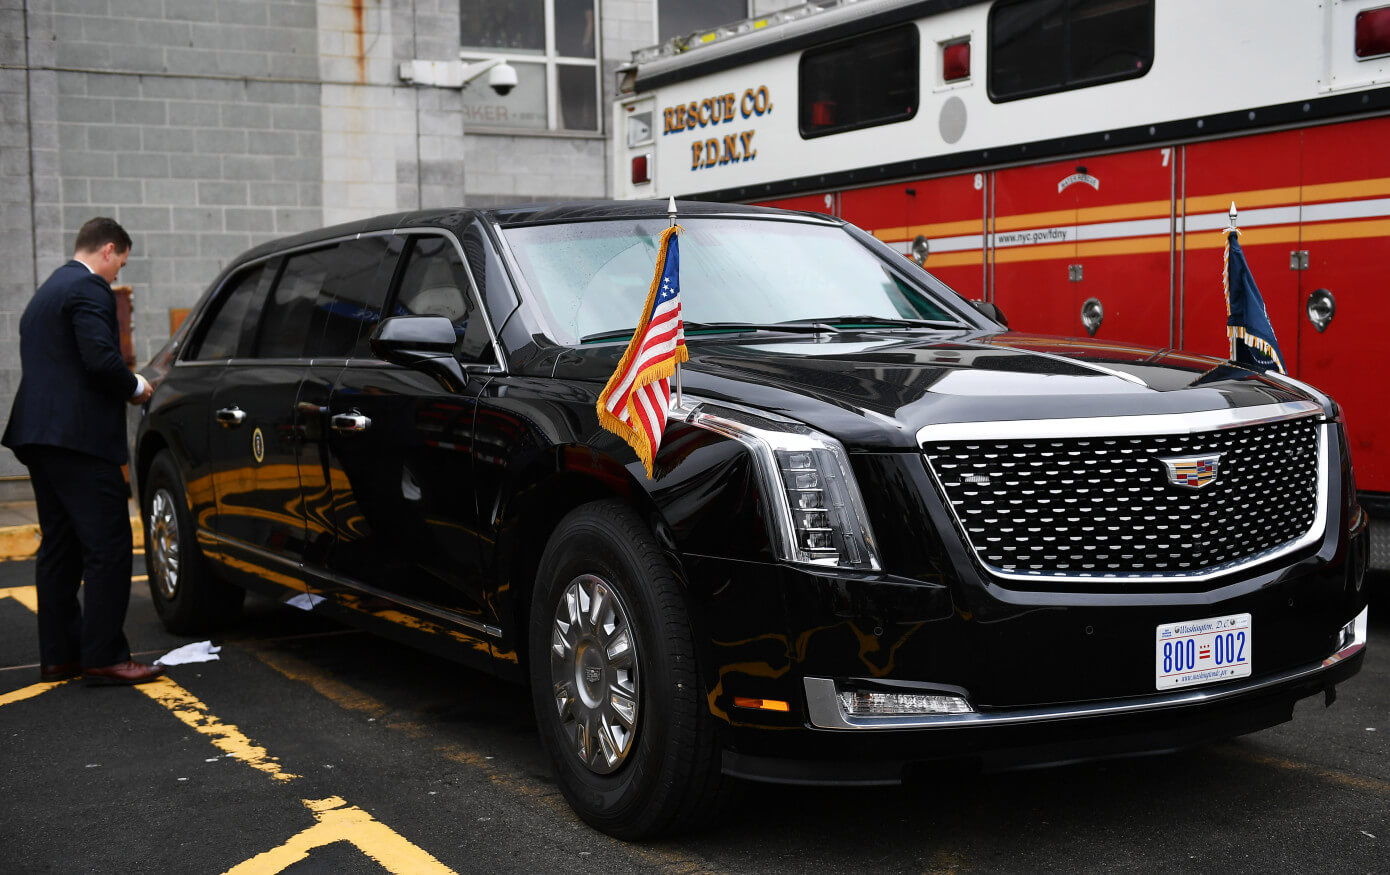 Donald Trump's new presidential limo is The Beast